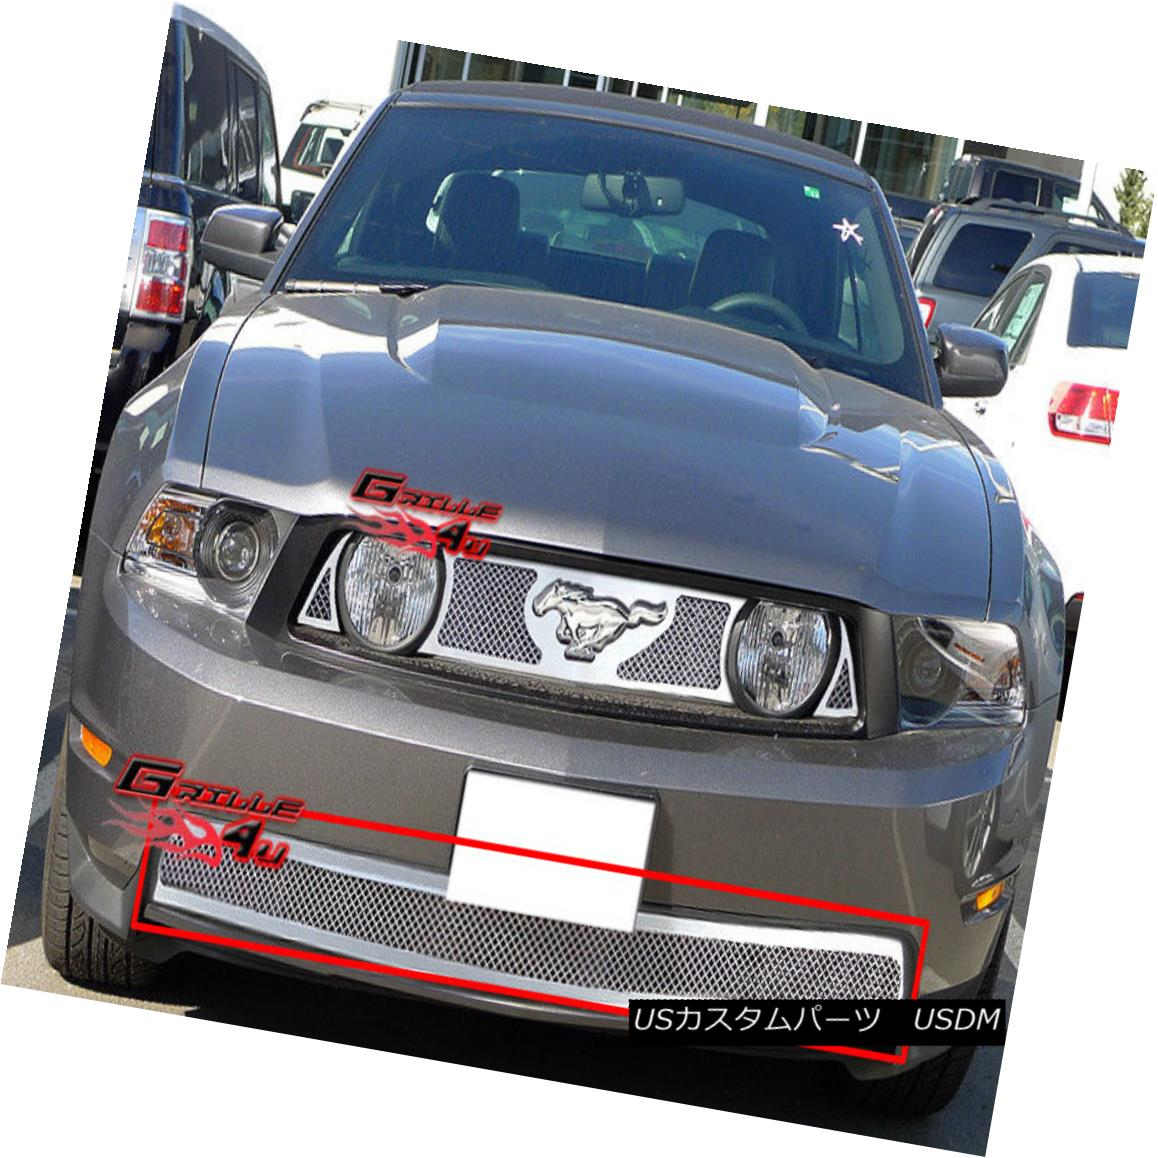 グリル 2010-2012 Ford Mustang GT V8 Bumper Stainless Steel Mesh Grille Grill Insert 2010-2012フォードマスタングGT V8バンパーステンレスメッシュグリルグリルインサート